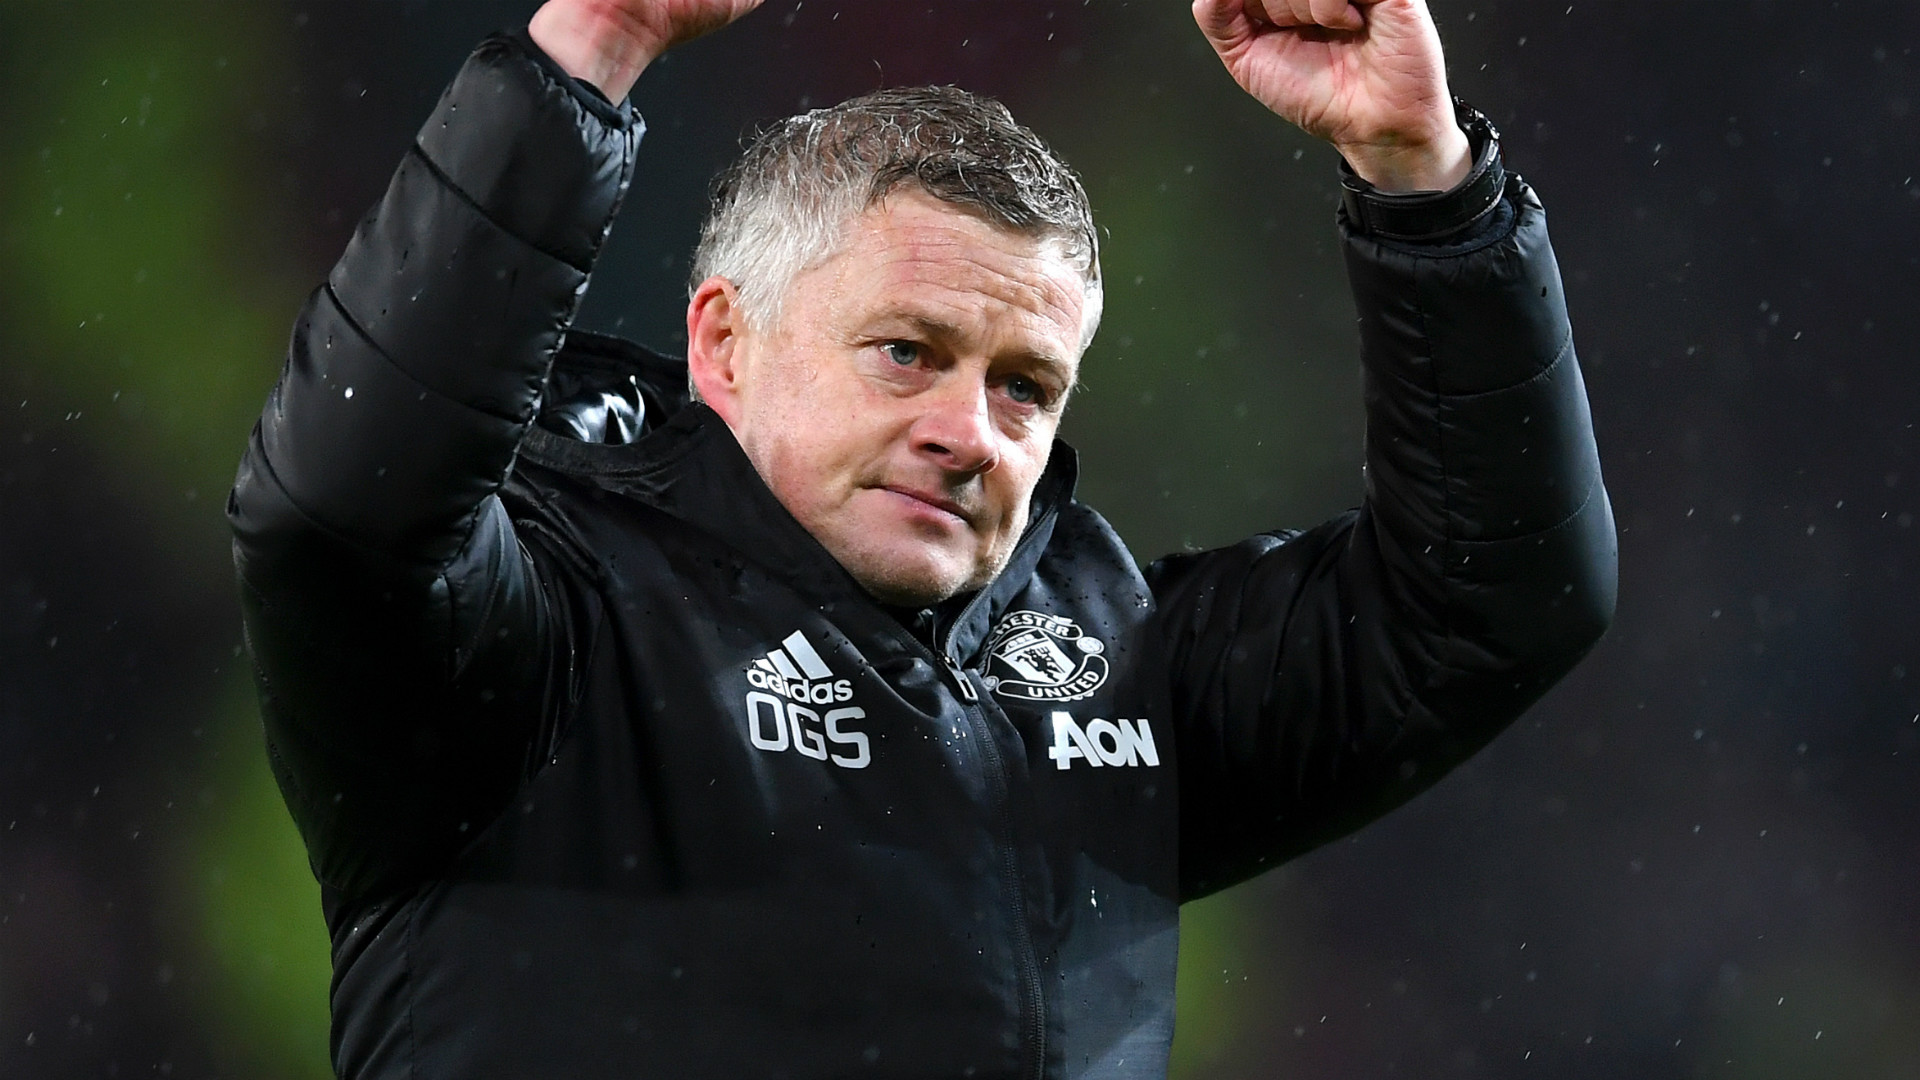 'They have got the right man and he's doing a good job' - Solskjaer's first 12 months at Manchester United